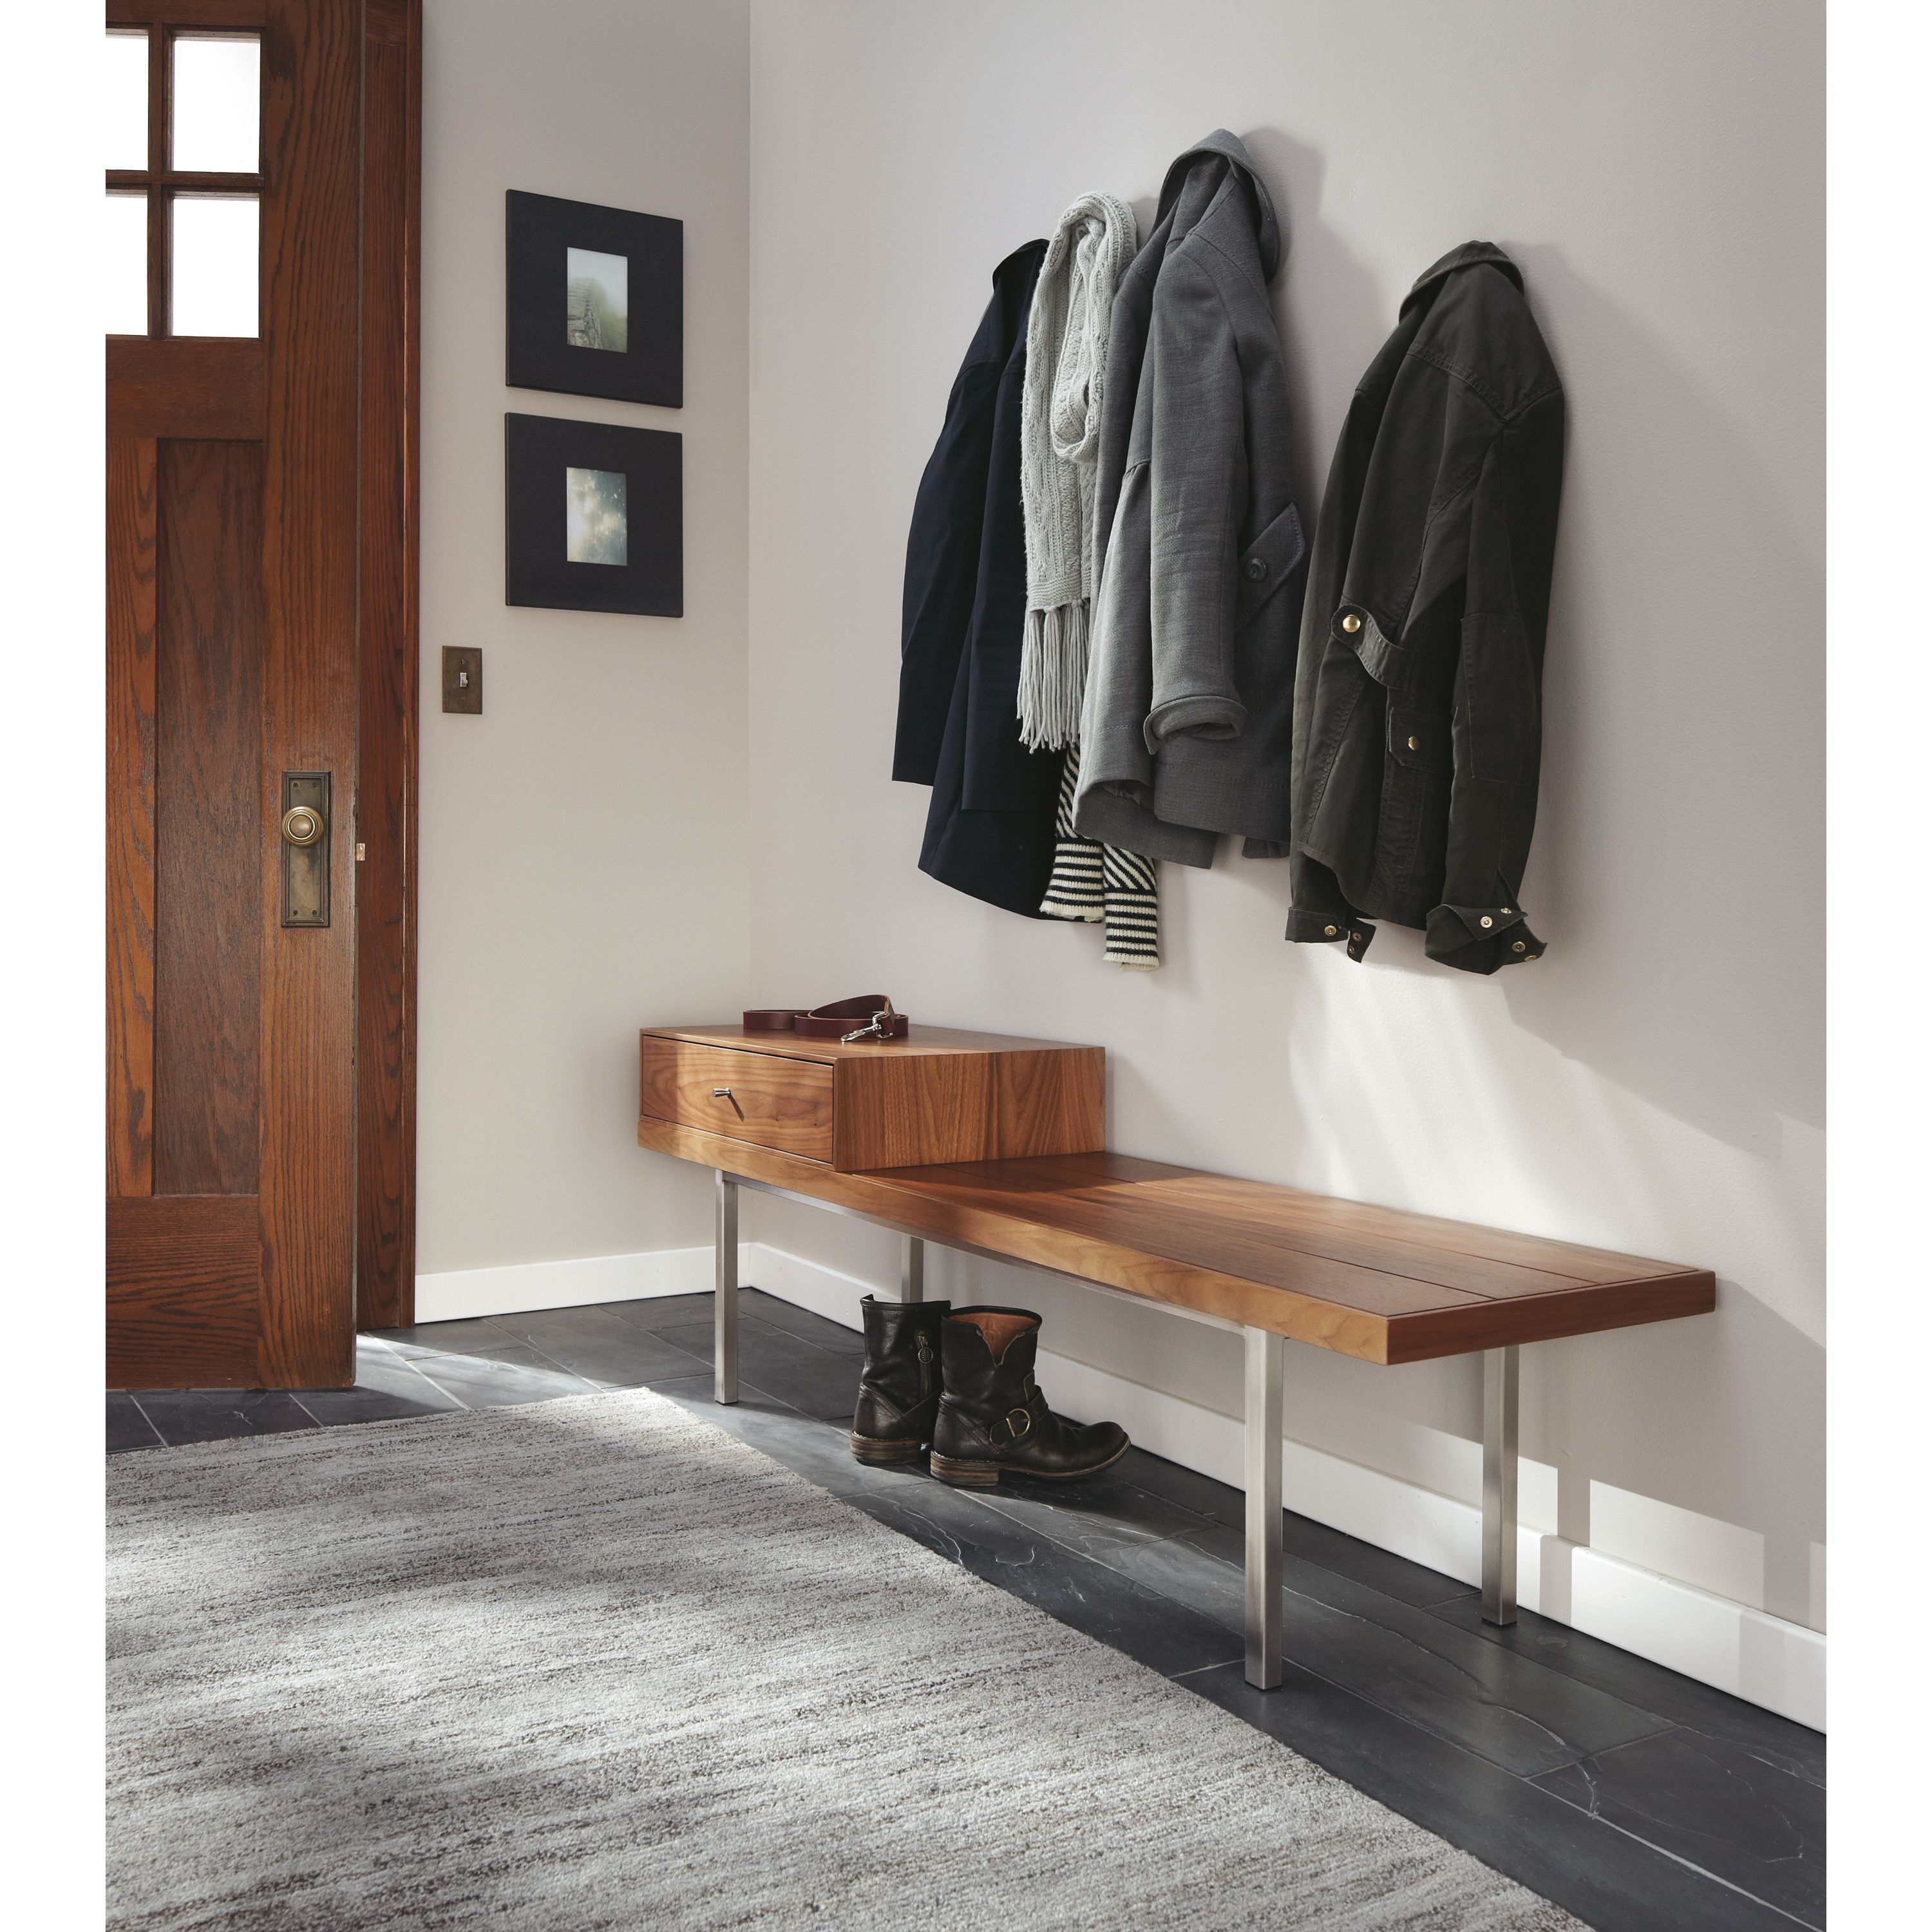 Morris Bench with Drawer - Modern Benches, Stools & Ottomans - Modern Living Room Furniture - Room & Board